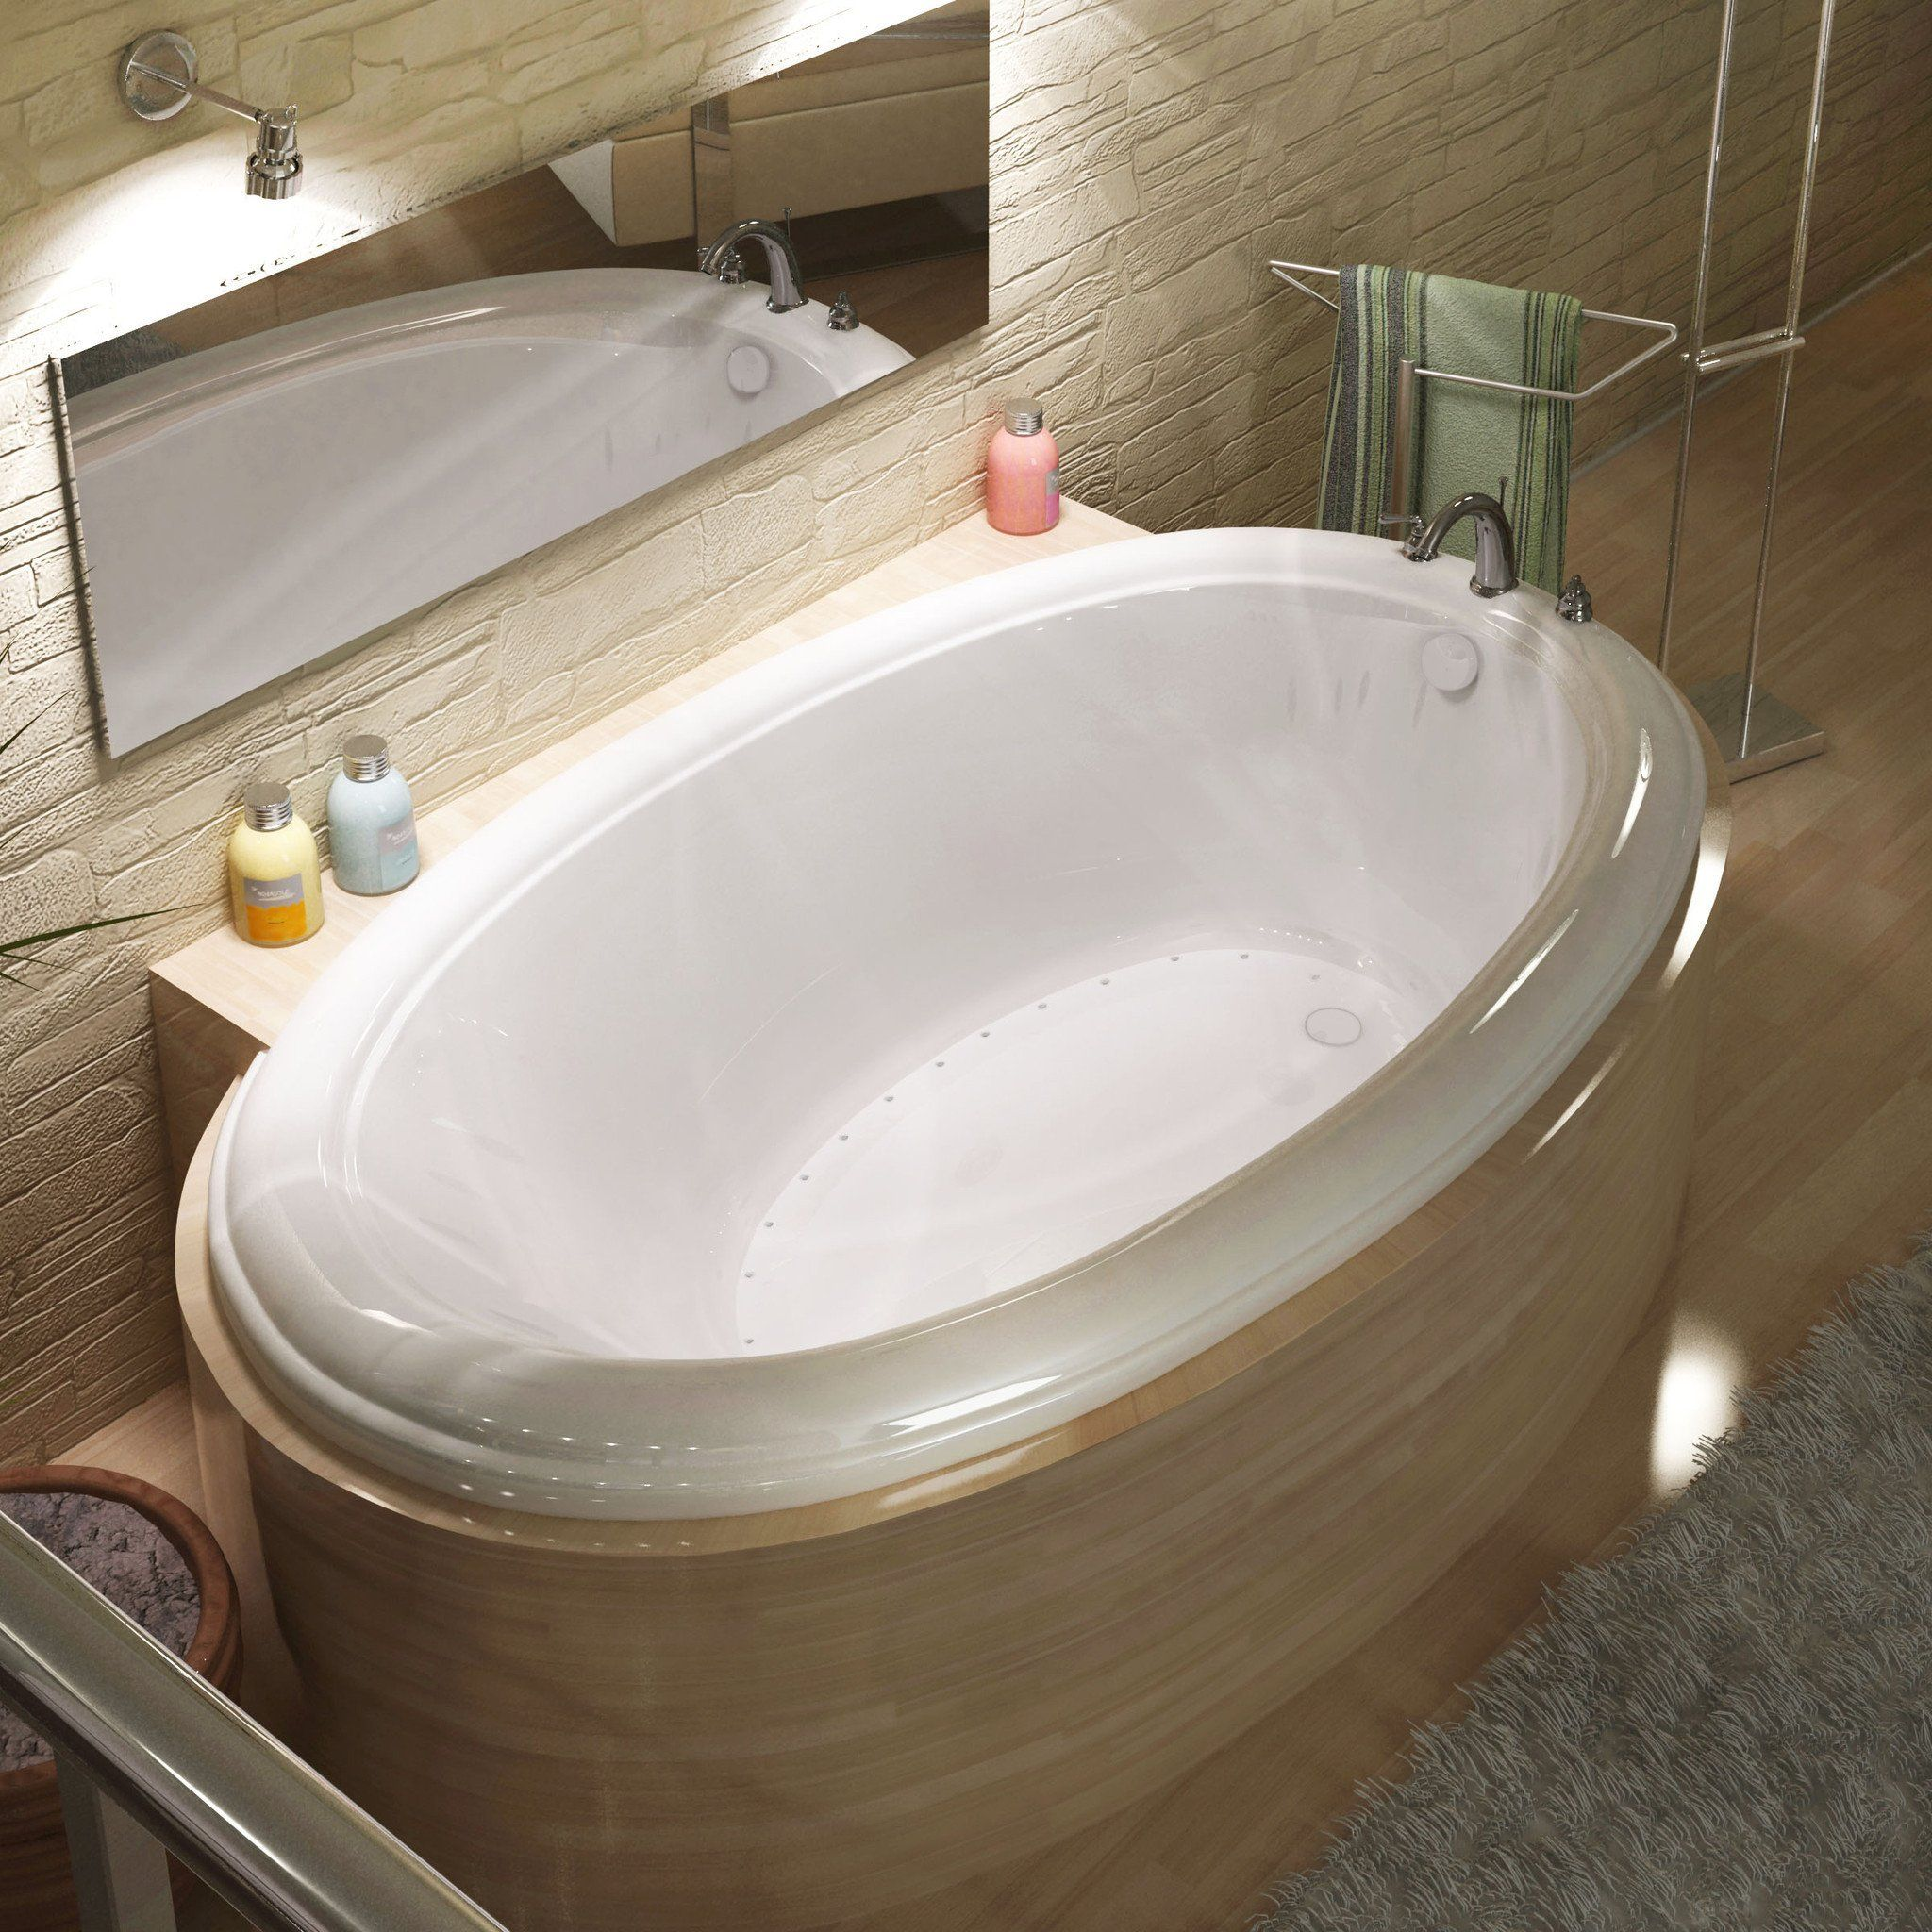 Atlantis Whirlpools 4270par Petite 42 X 70 Oval Air Jetted Bathtub